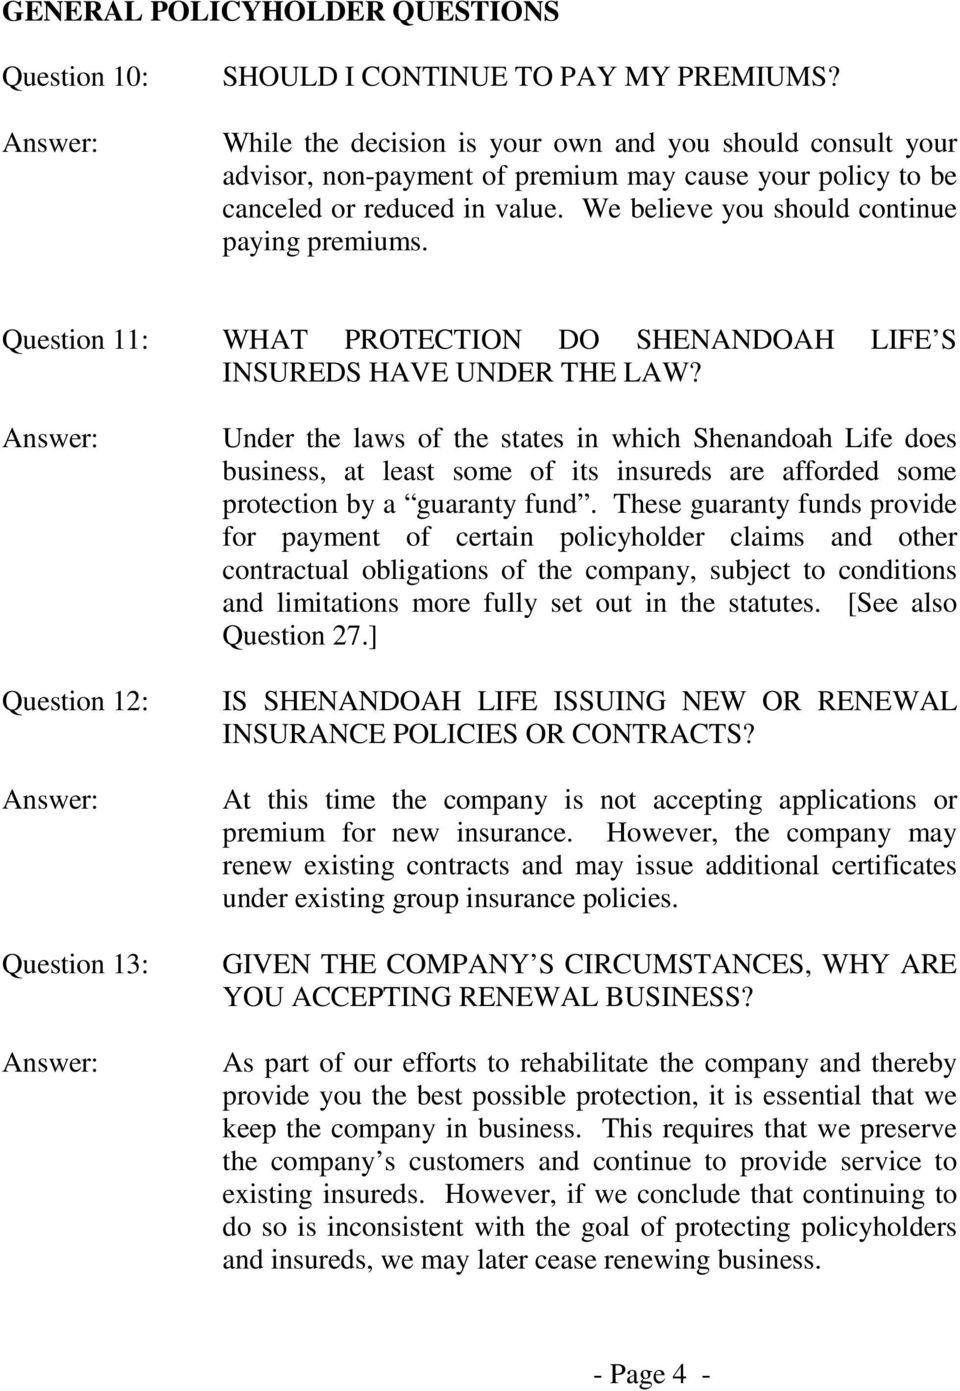 Question 11: WHAT PROTECTION DO SHENANDOAH LIFE S INSUREDS HAVE UNDER THE LAW?